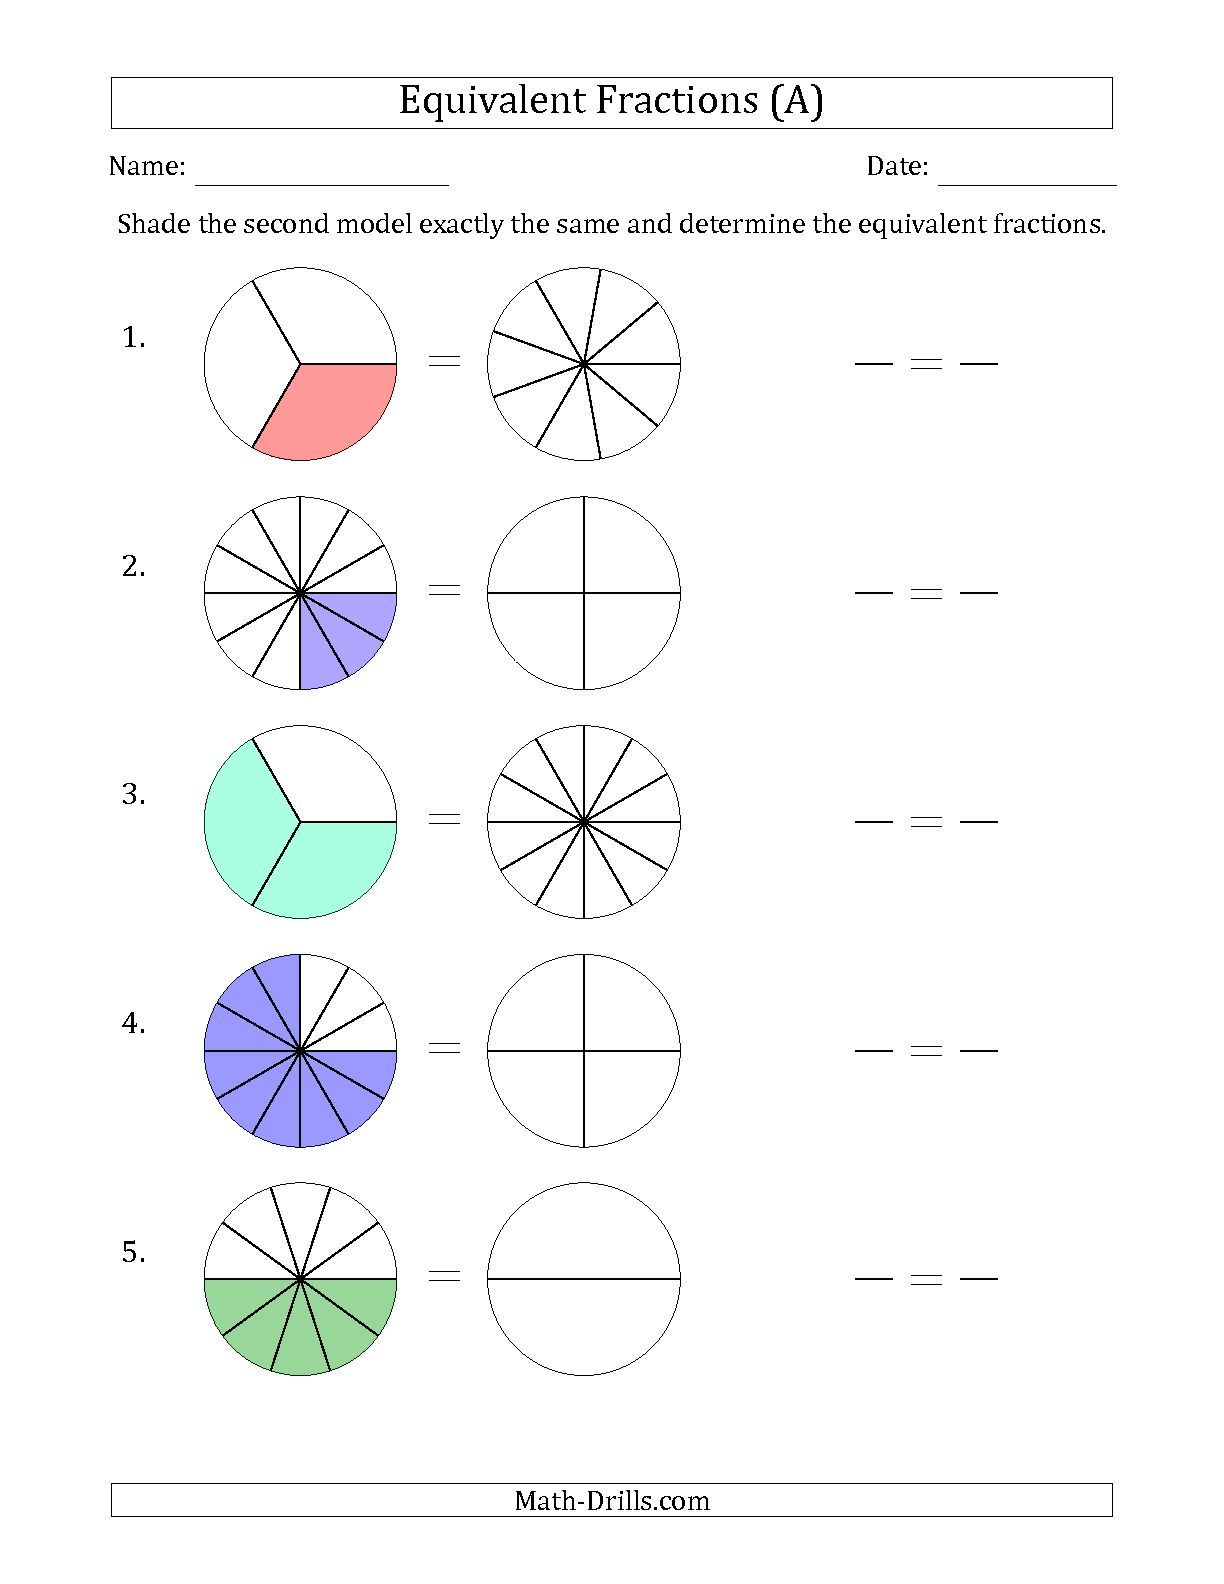 The Equivalent Fractions Models A math worksheet from the – Fraction Worksheets for Second Grade